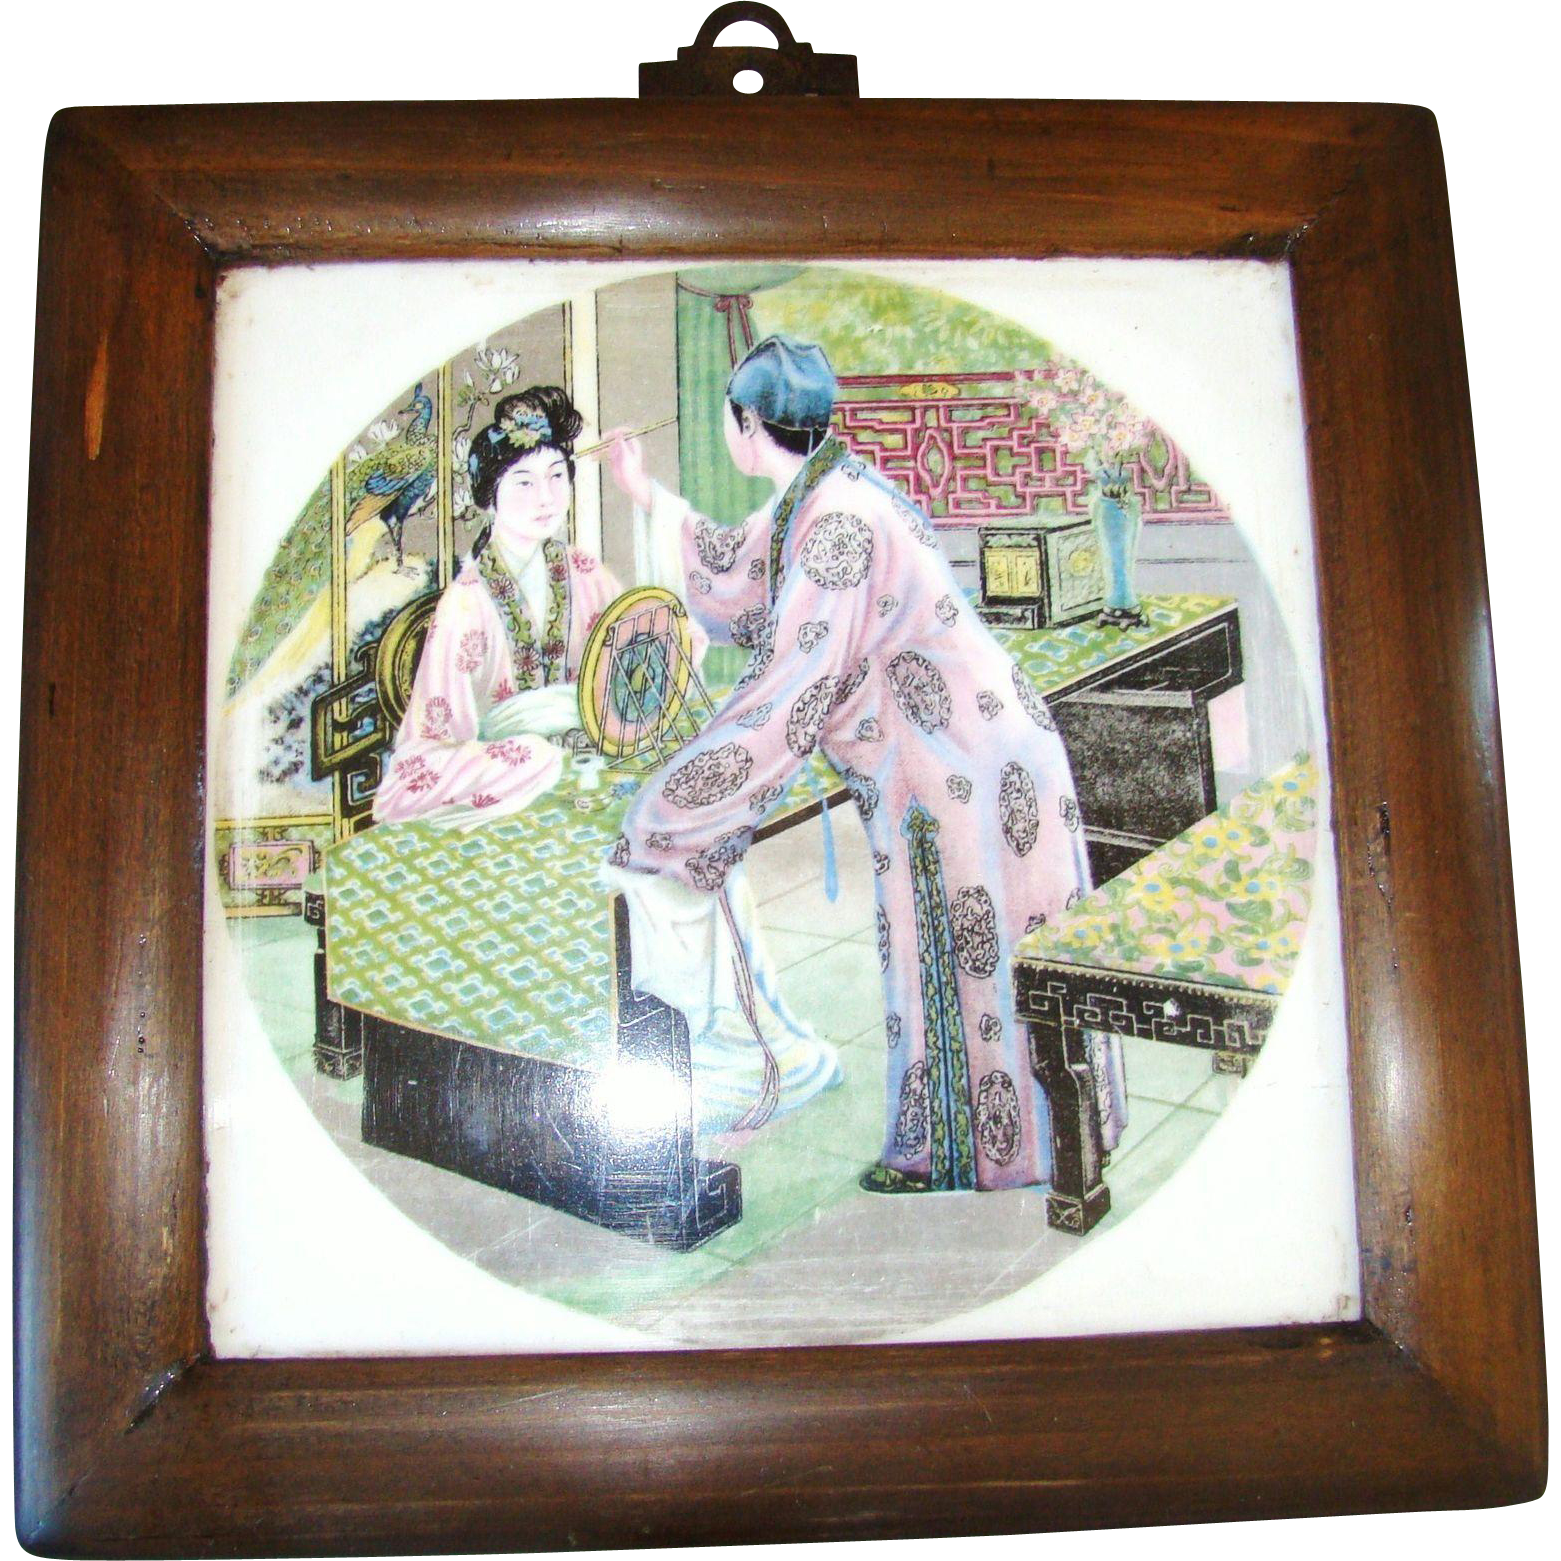 Antique Framed Chinoiserie Ceramic Tile Two Chinese Women Designn 19th century